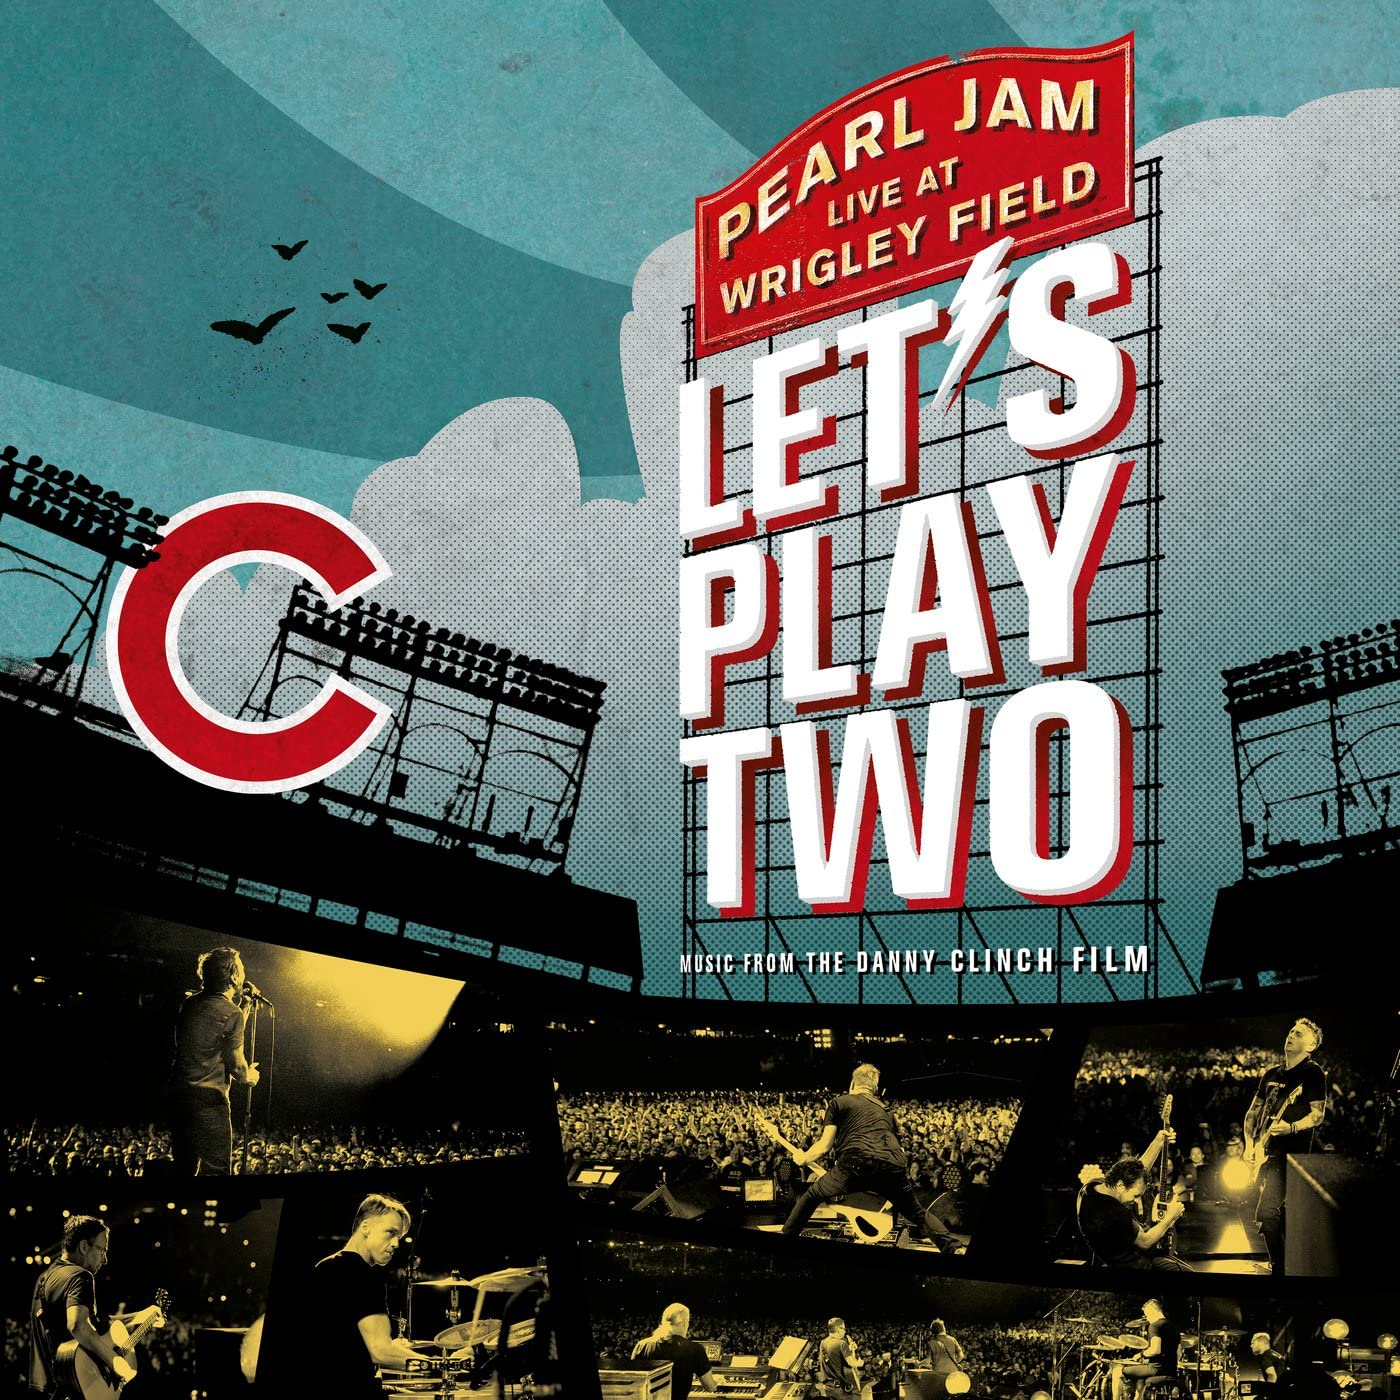 Pearl Jam/Let's Play Two: Live At Wrigley Field Chicago [LP]